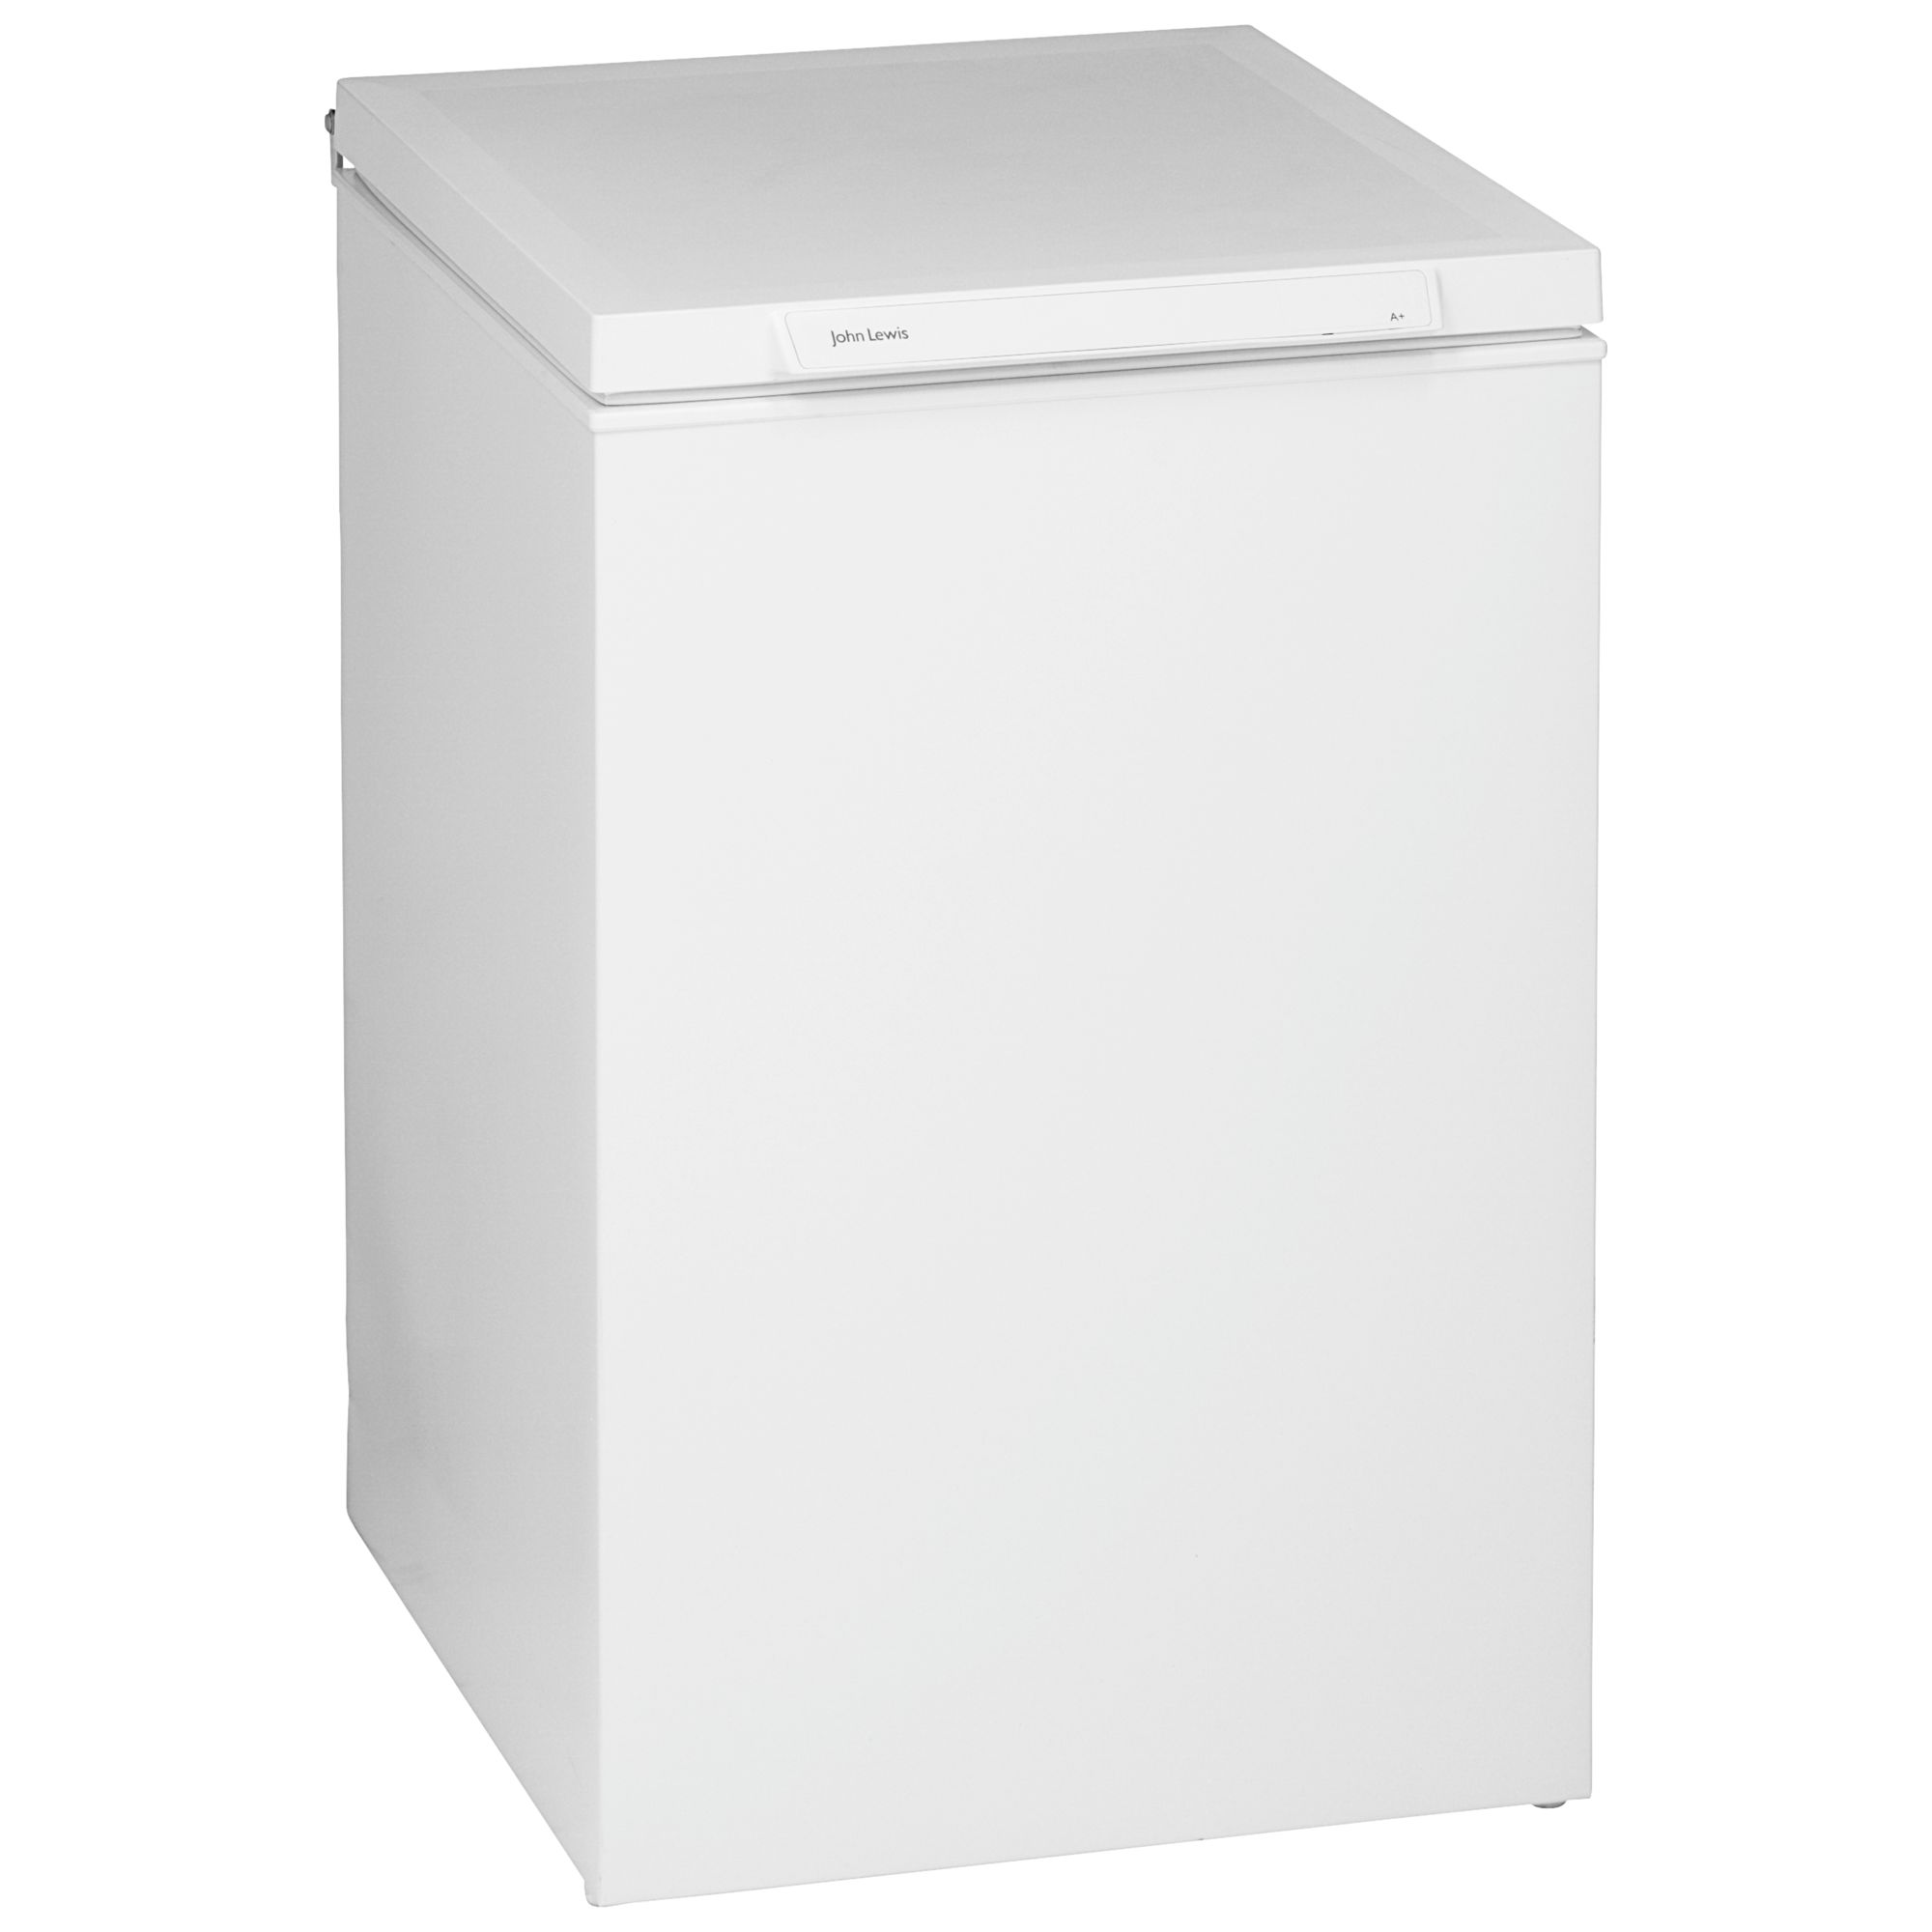 Cheap John Lewis Freezers At Findthebestprices Co Uk